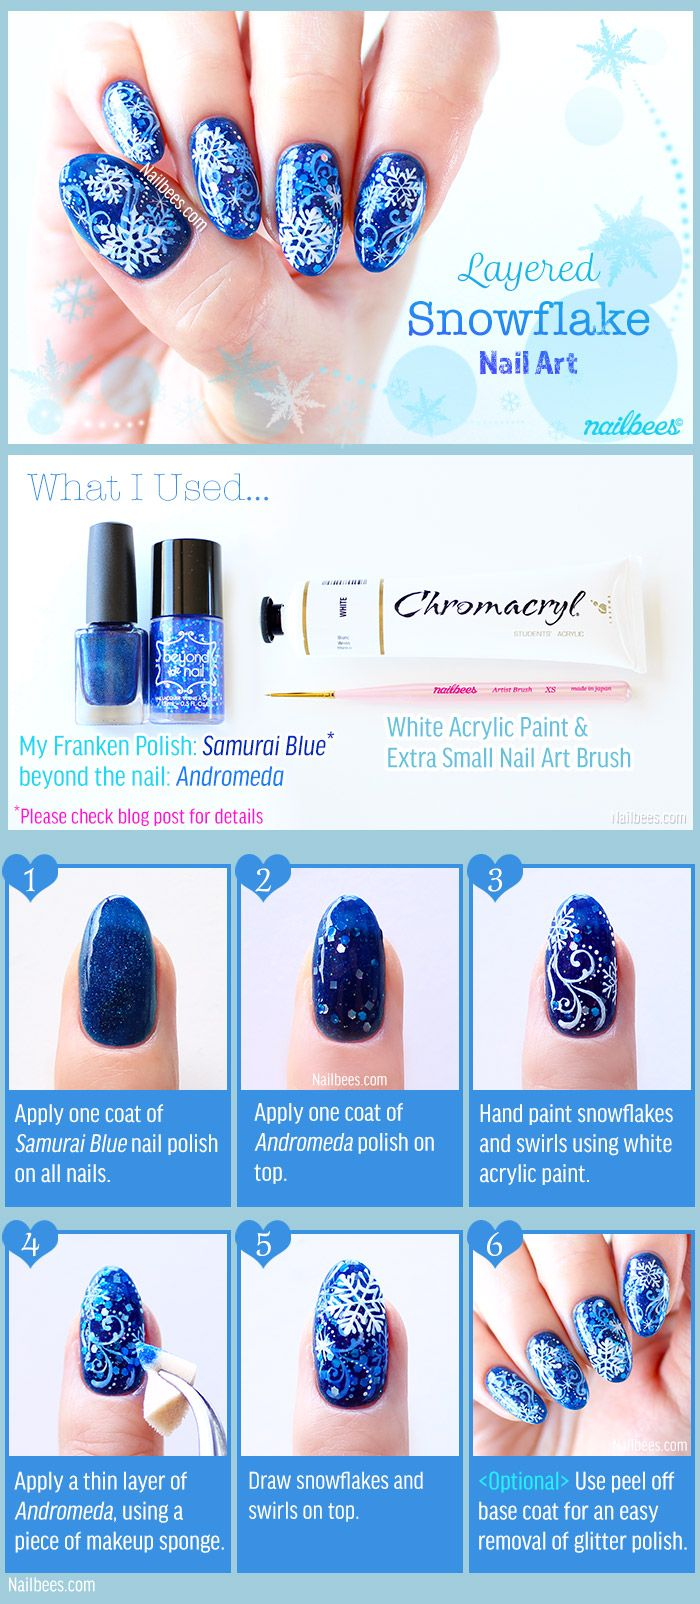 Layered Snowflake Nail Art Tutorial https://nailbees.com/layered-snowflake-nail-art